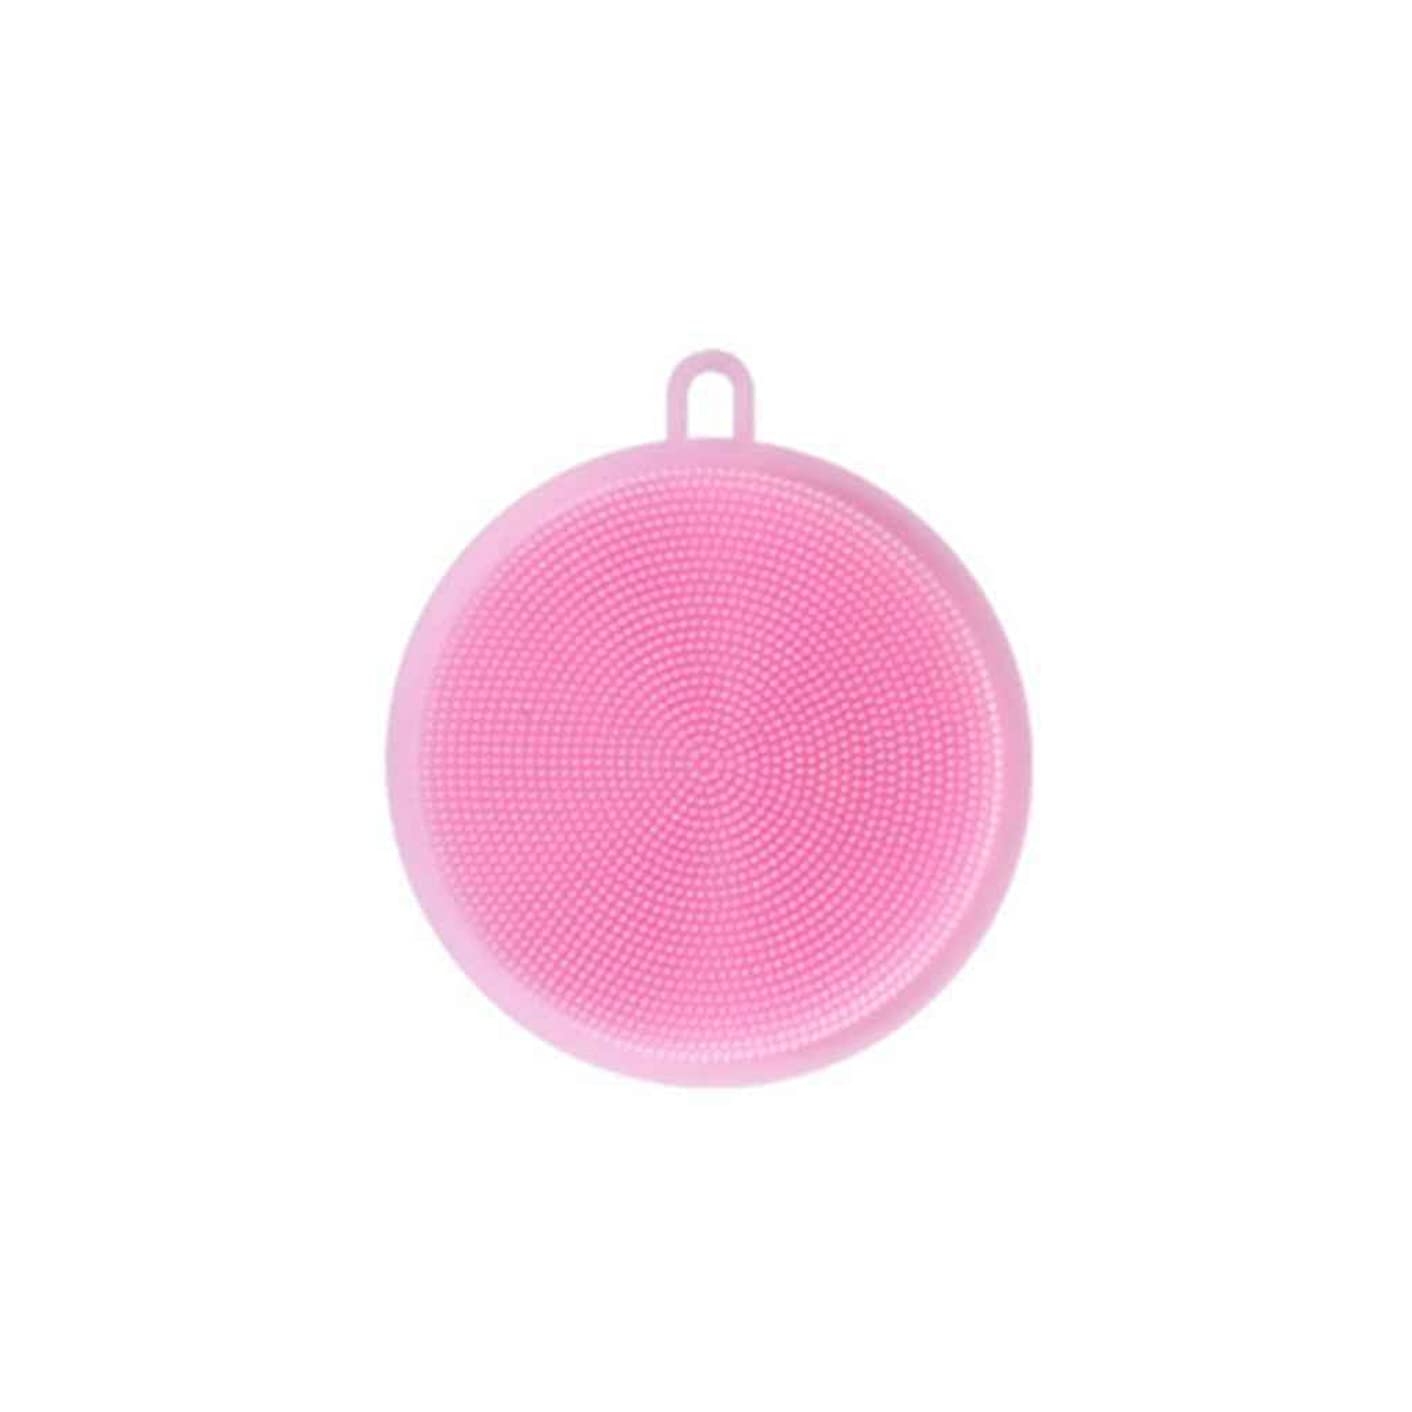 Kitchen Silicone Cleaning Dish Brush Washer Scrubber Scouring Mat Pad Liner Fruit Vegetables Food Boiler